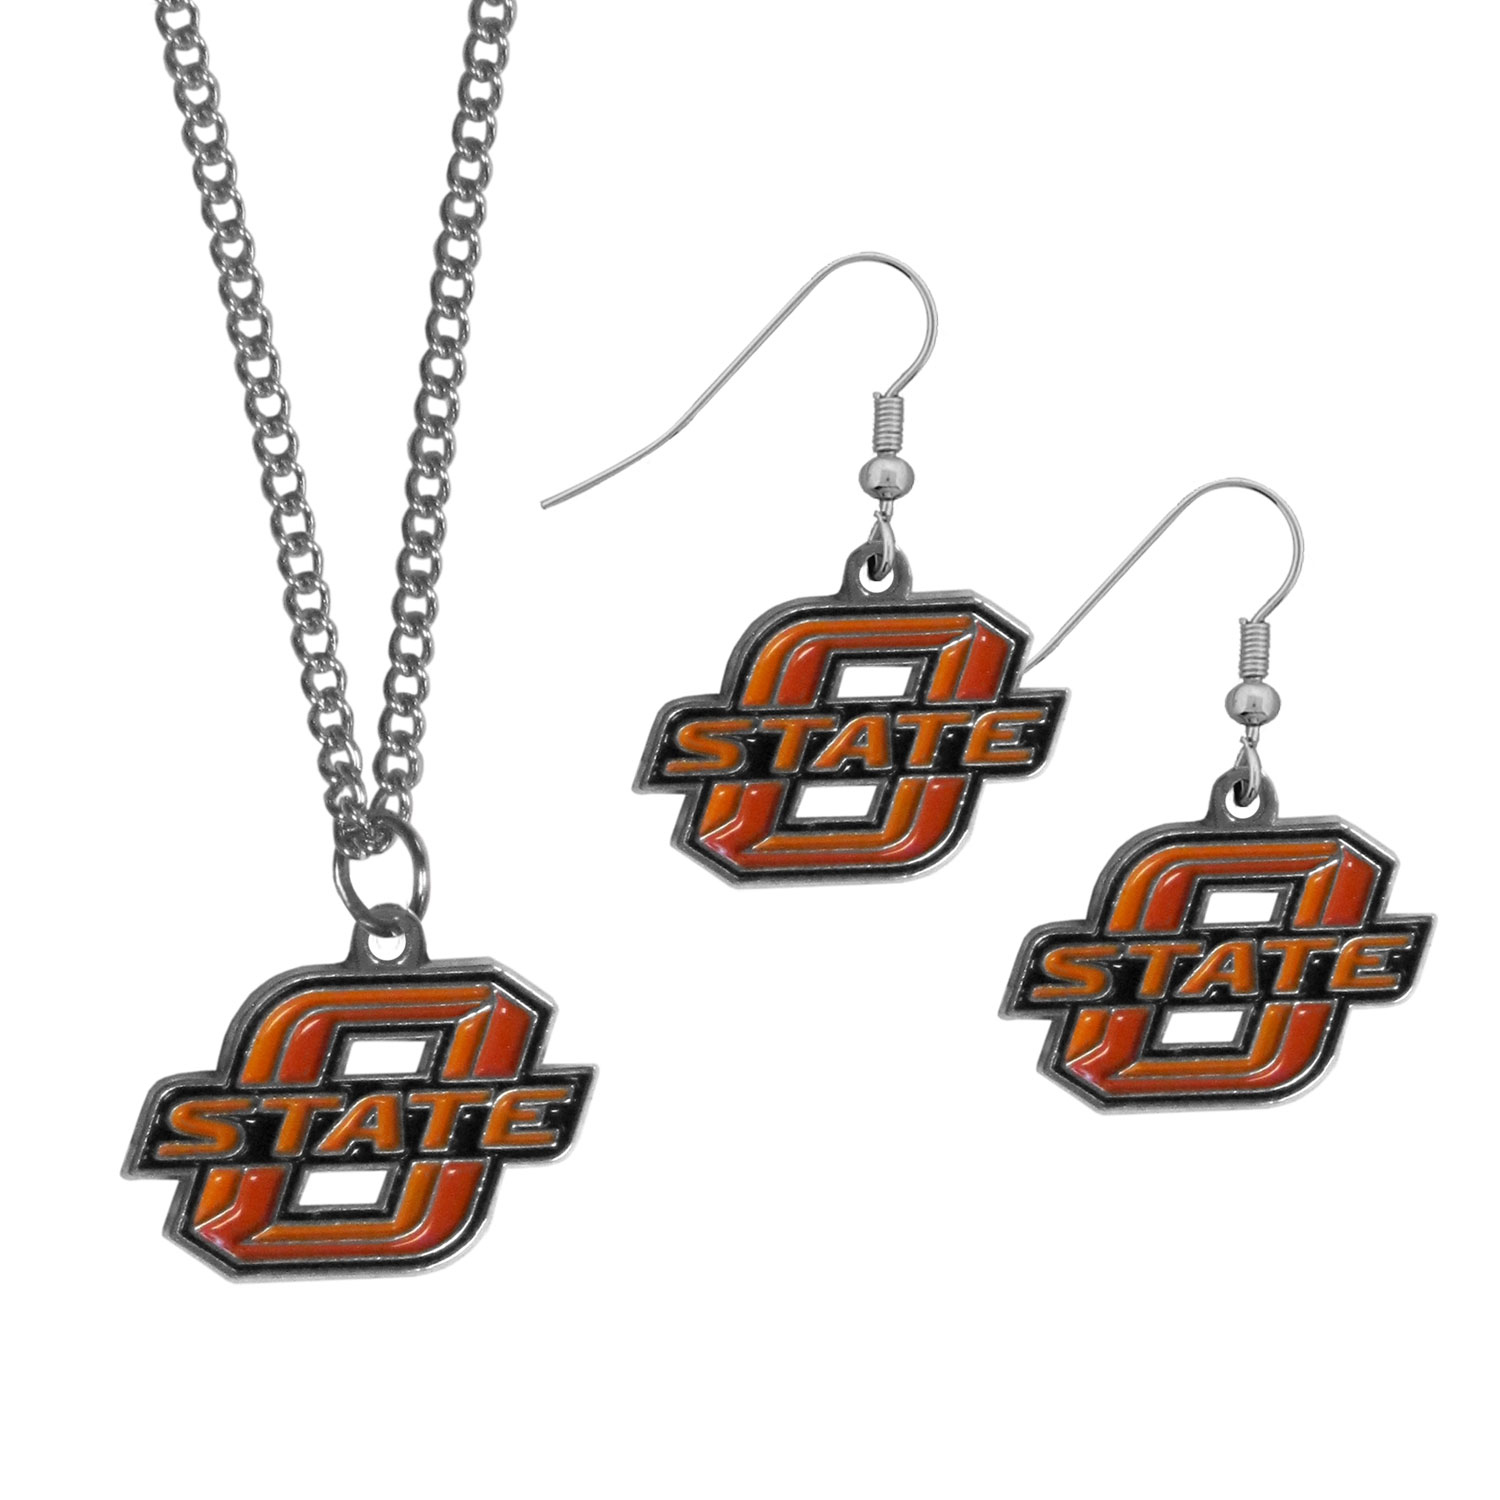 Oklahoma St. Cowboys Dangle Earrings and Chain Necklace Set - This classic jewelry set contains are most popular Oklahoma St. Cowboys dangle earrings and 22 inch chain necklace. The trendy, dangle earrings are lightweight and feature a fully cast metal team charm with enameled team colors. The matching necklace completes this fashion forward combo and is a spirited set that is perfect for game day but nice enough for everyday.